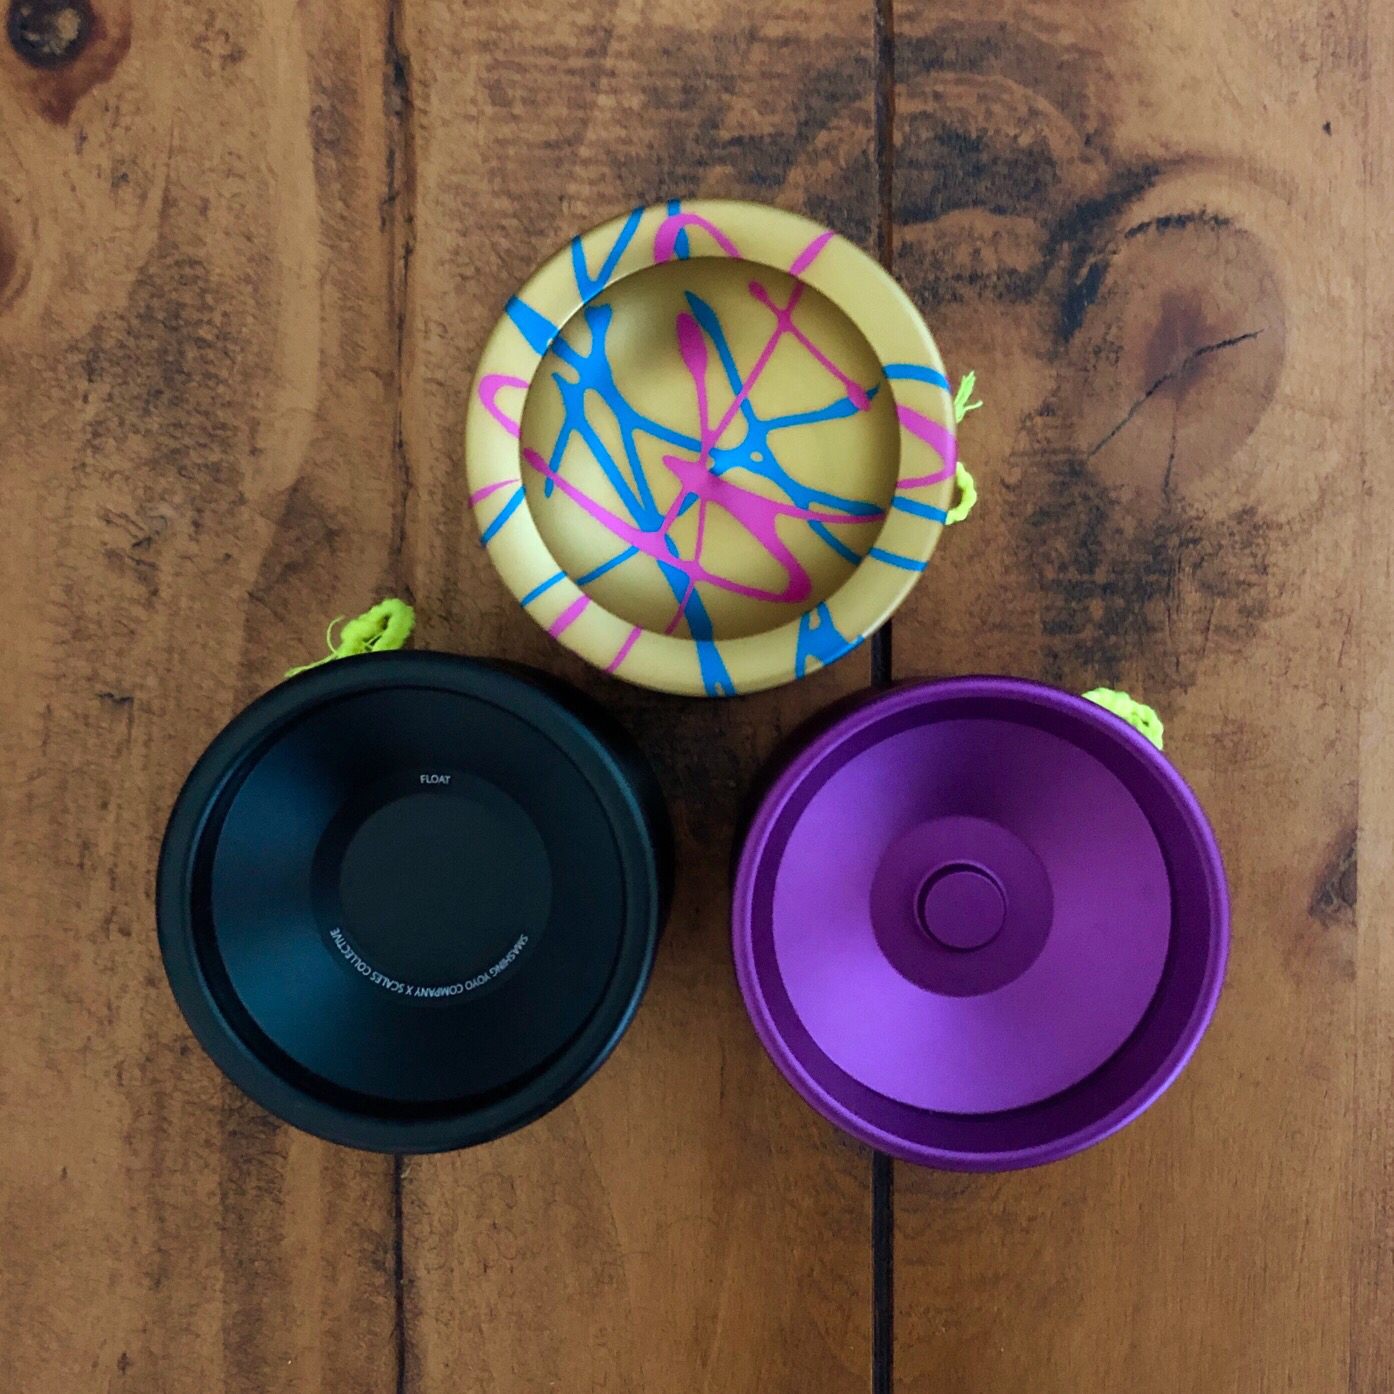 Smashing YoYos Monocle, Float, and Bounce